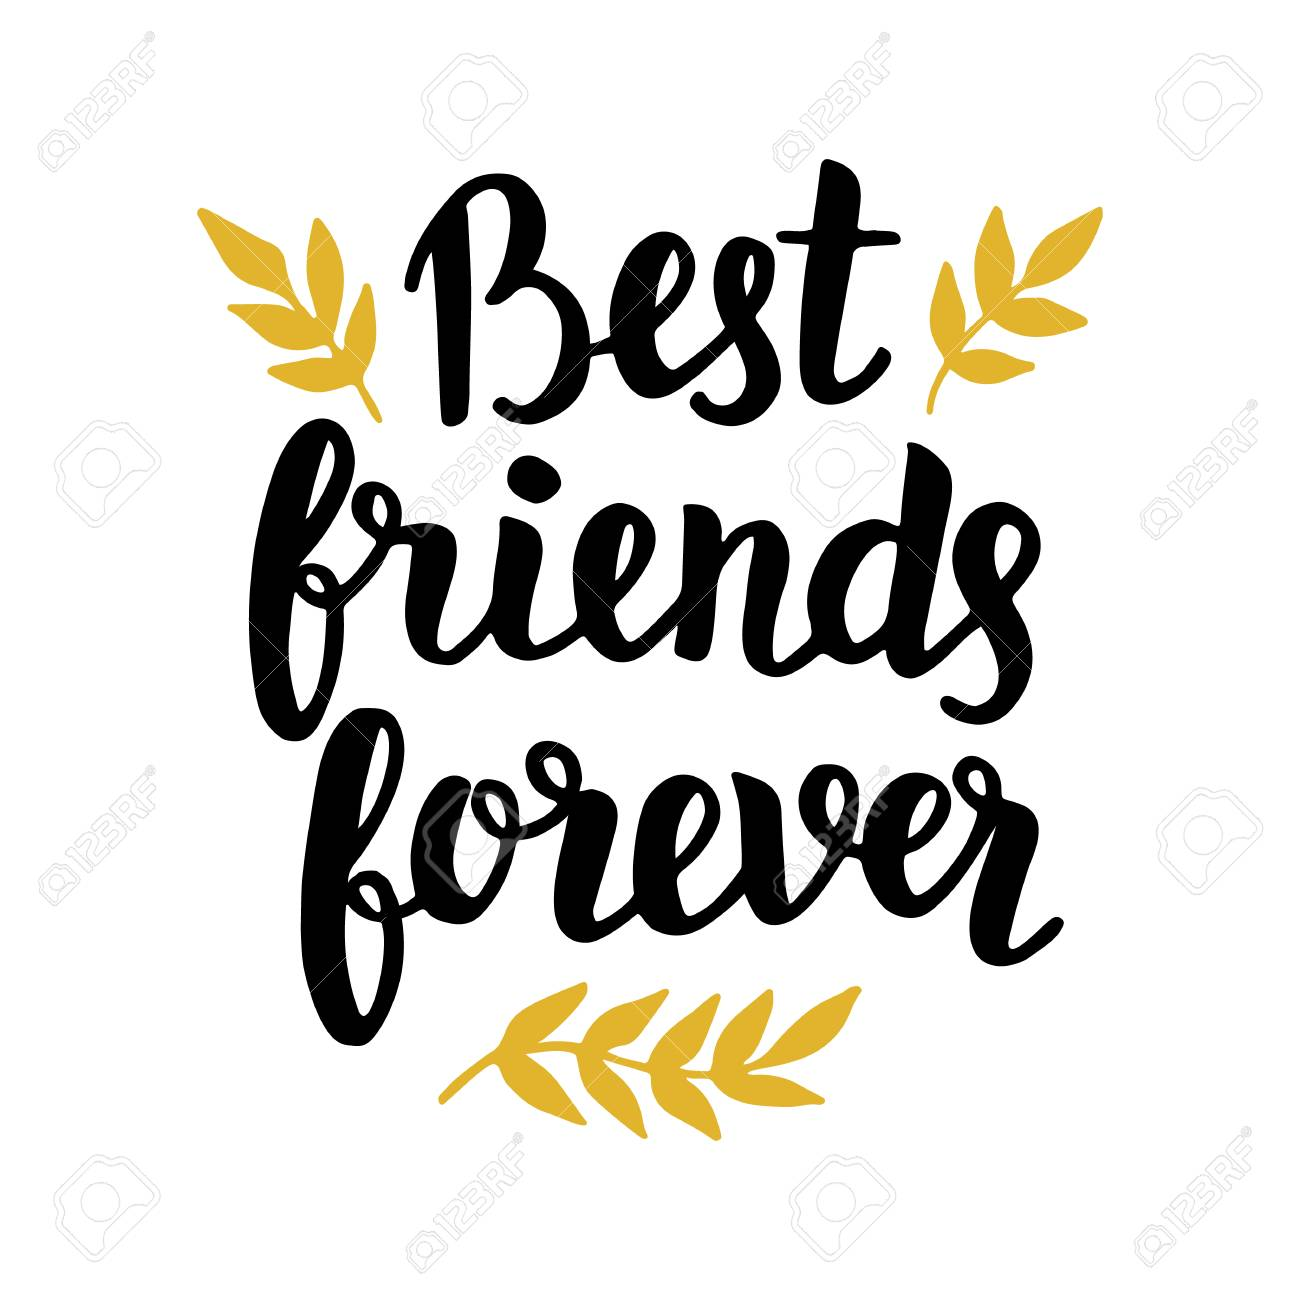 Best friends forever quote, modern hand written lettering in black and golden colors. Typographic design for greeting cards, posters, t-shirt print. Trendy vector calligraphy on white background. - 79098498